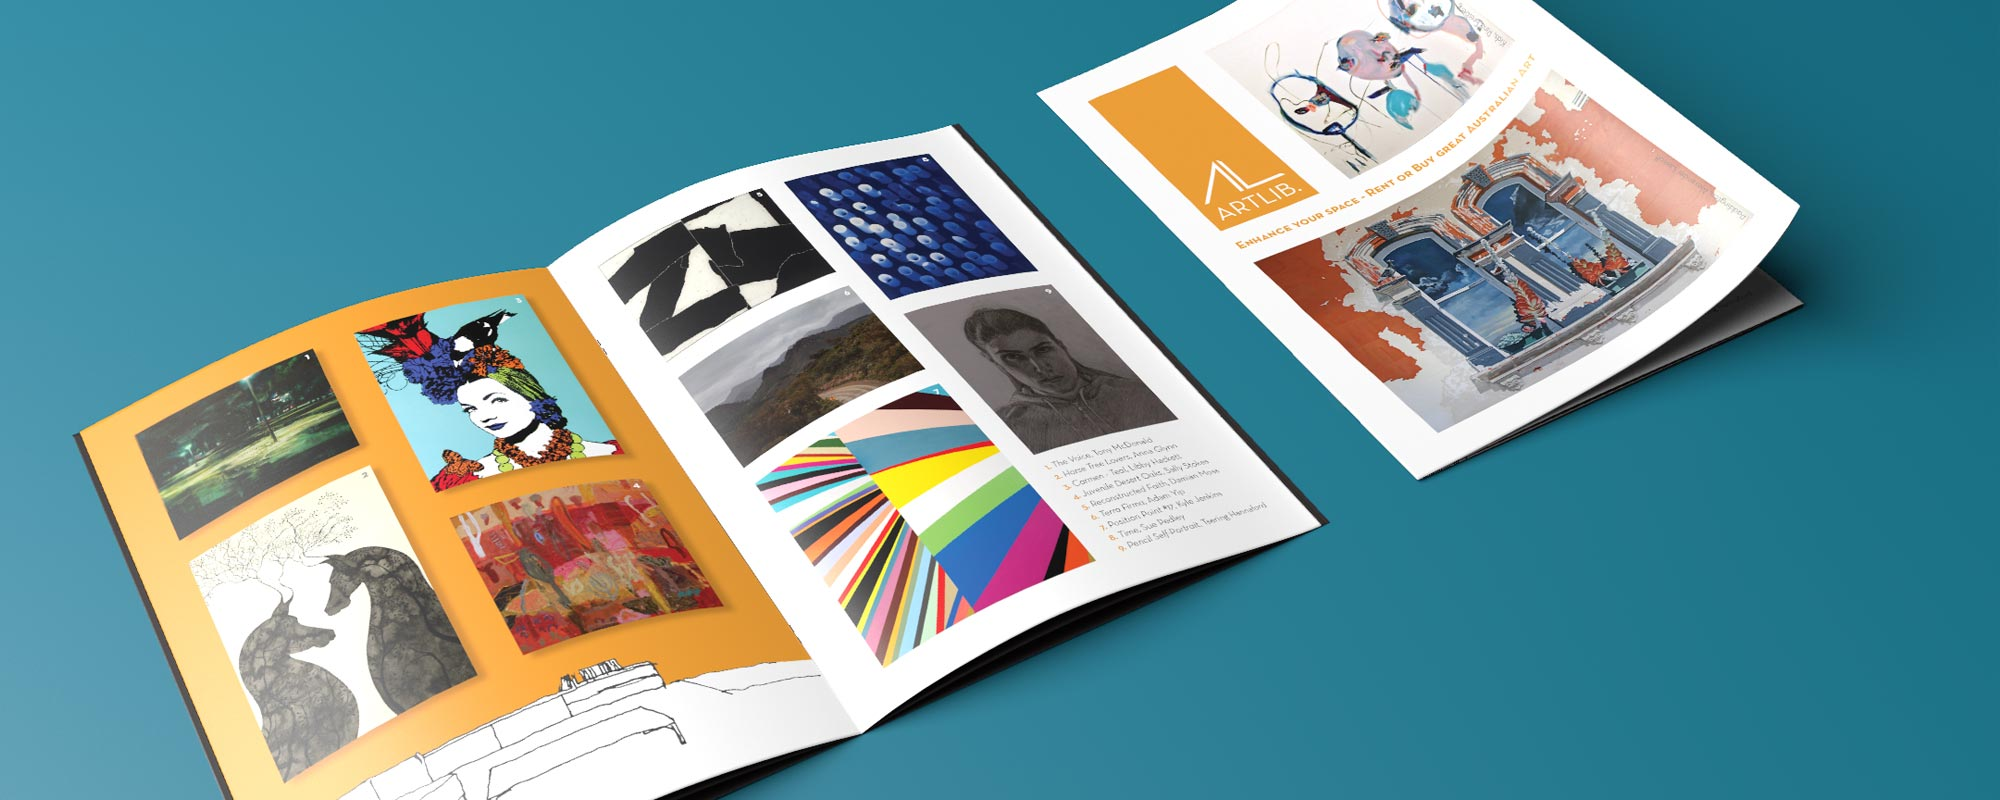 ArtLib A5 brochure design